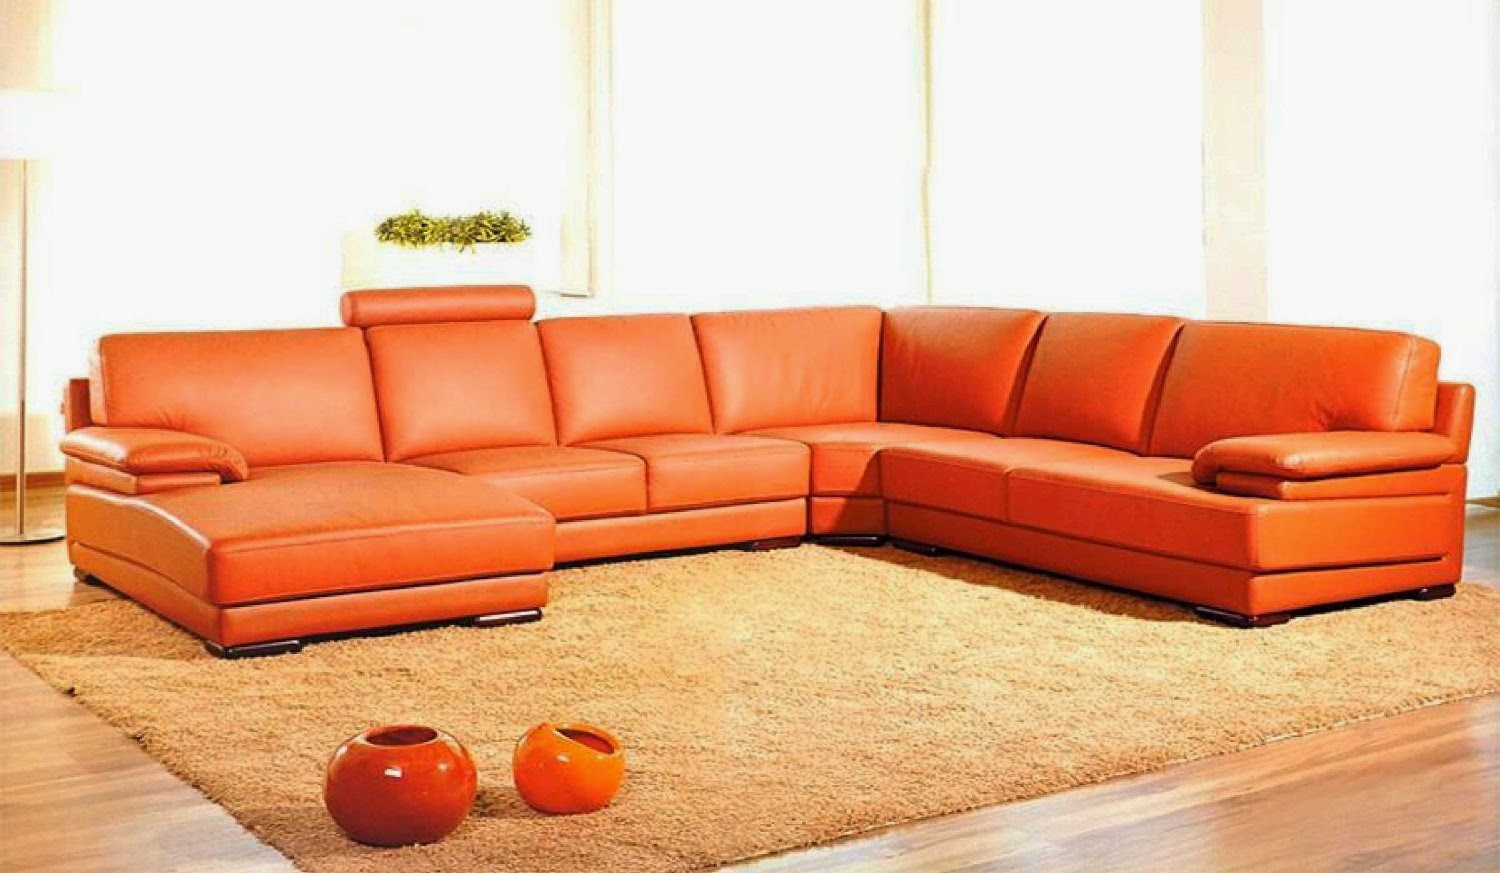 Orange couch orange sectional couch for Sofa orange